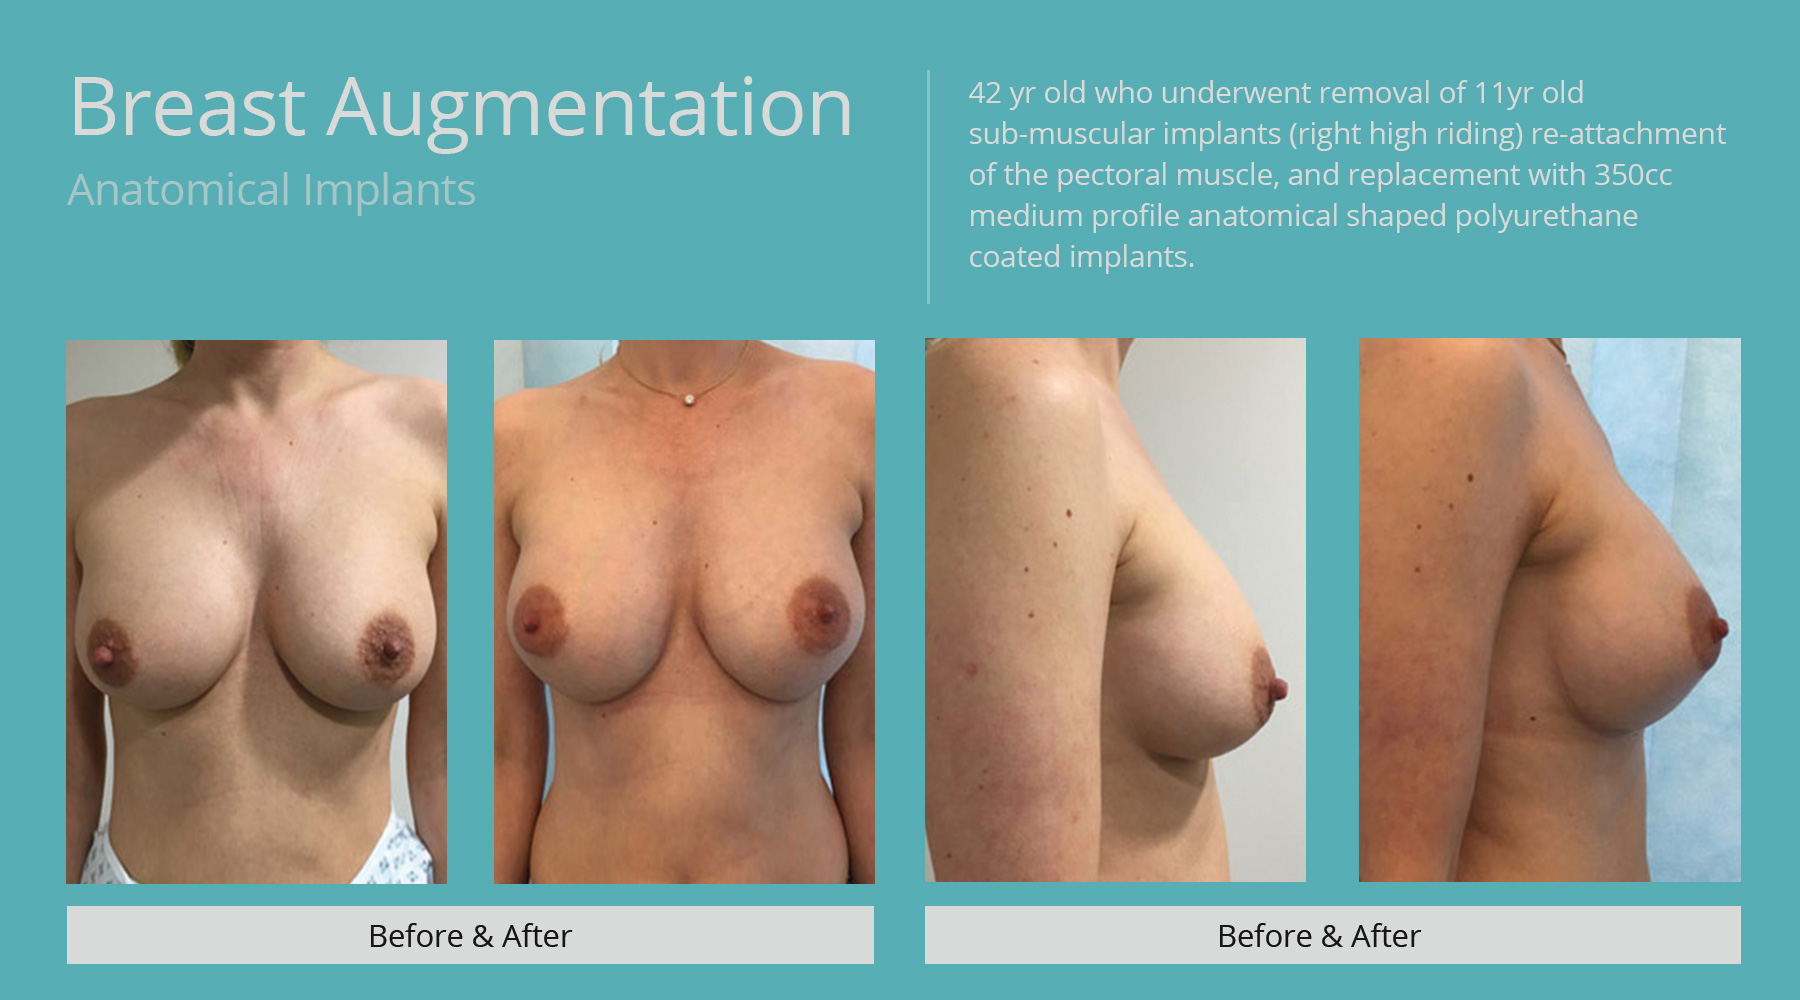 Breast-Augmentation-anatomical-27